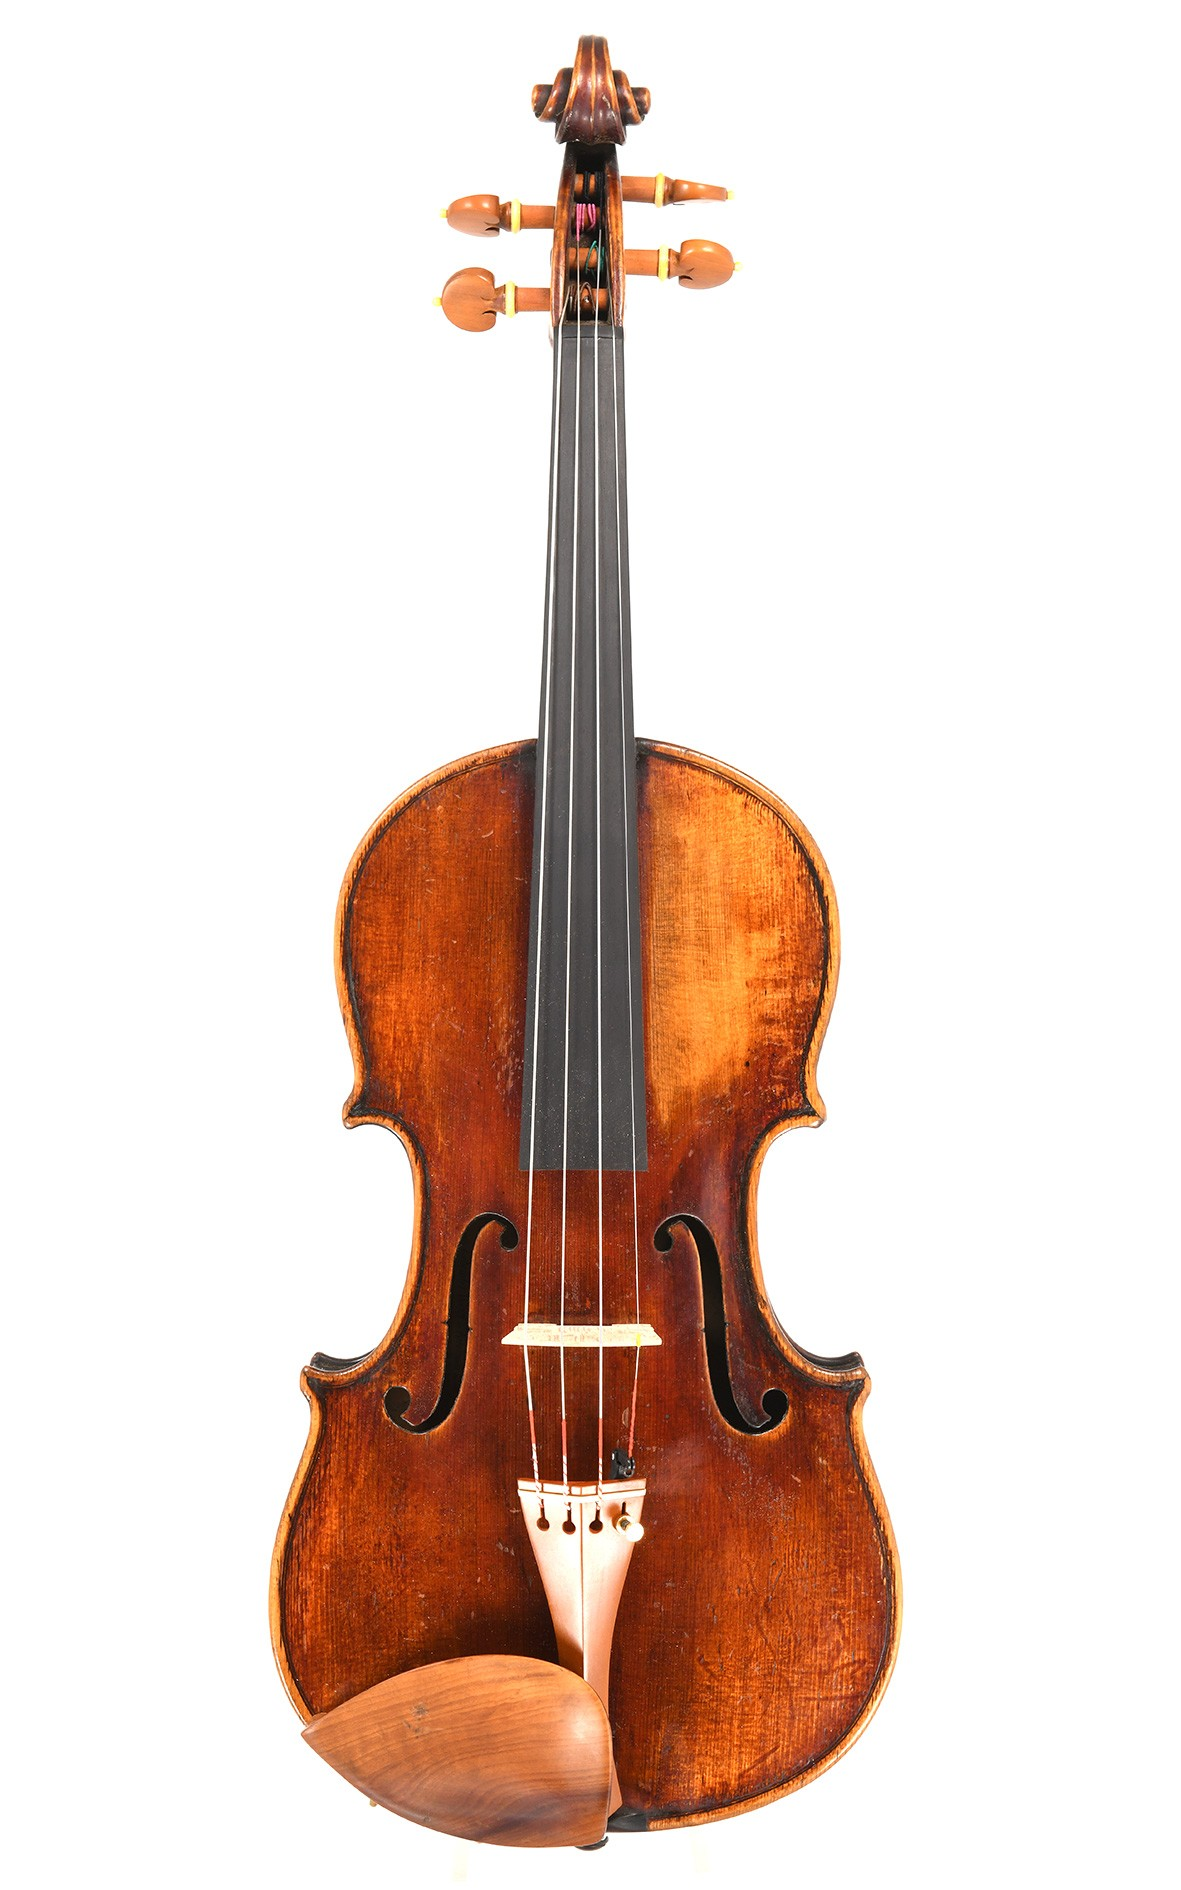 Violin by Wolff brothers, Kreuznach